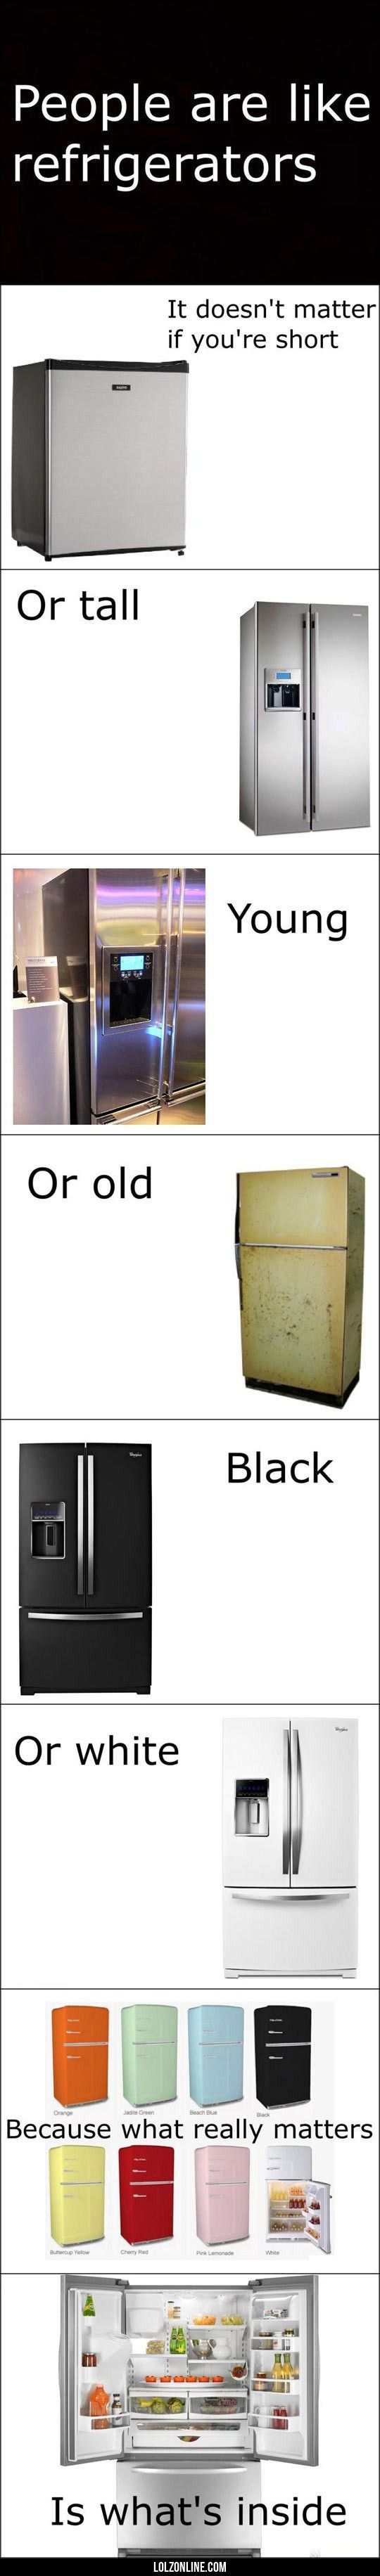 People Are Just Like Refrigerators#funny #lol #lolzonline